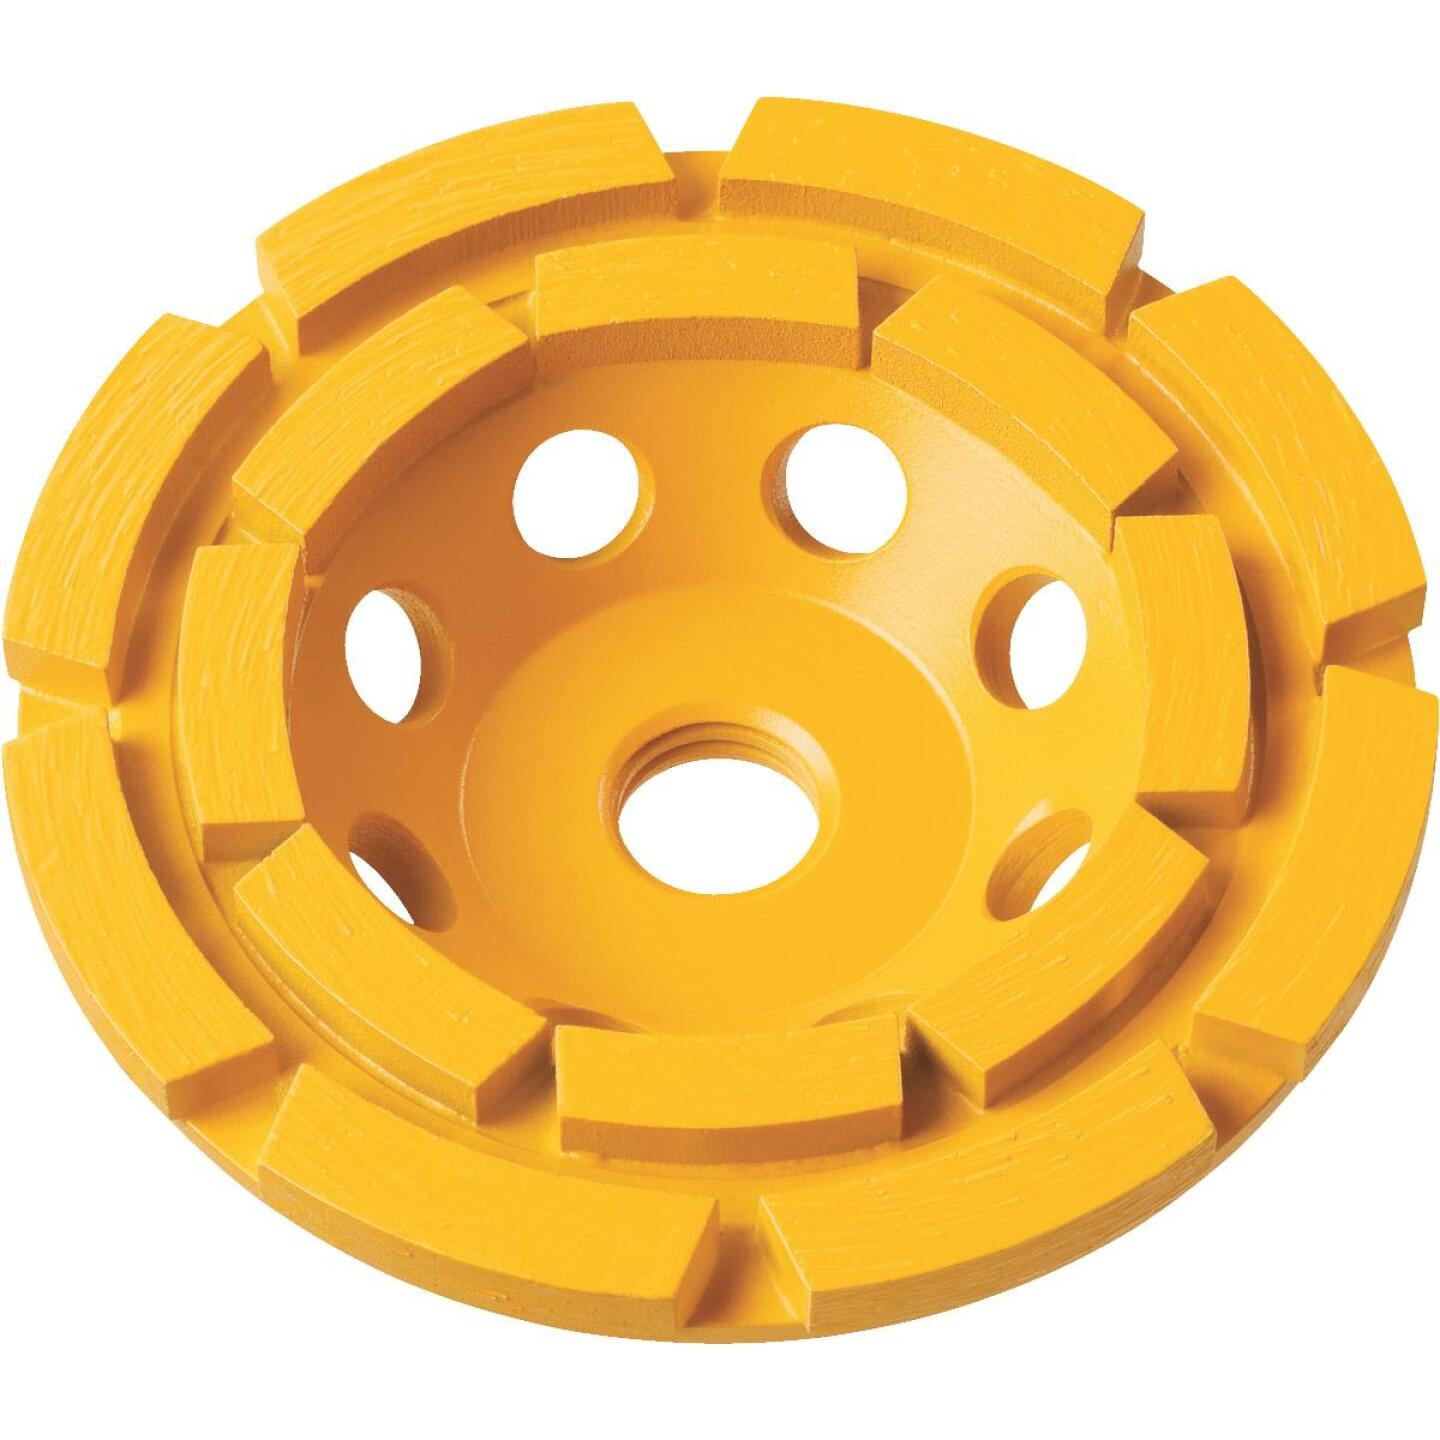 DeWalt 4 In. Segmented Double Row Masonry Cup Wheel Image 1